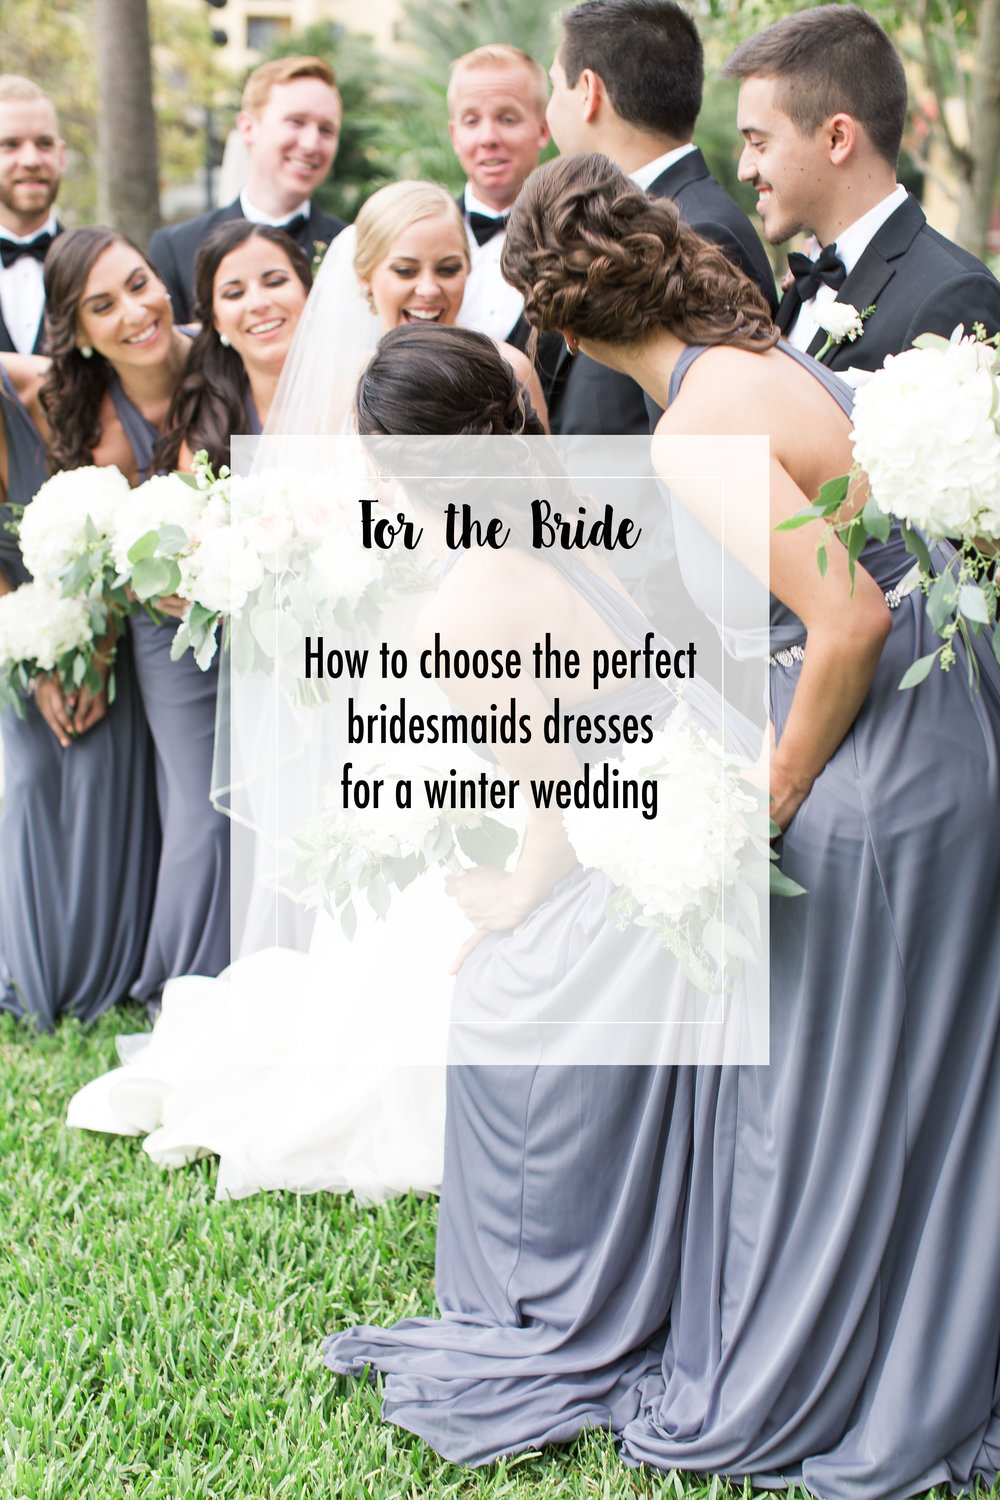 For the bride winter bridesmaids dresses psj photography by pj for the bride winter bridesmaids dresses ombrellifo Image collections